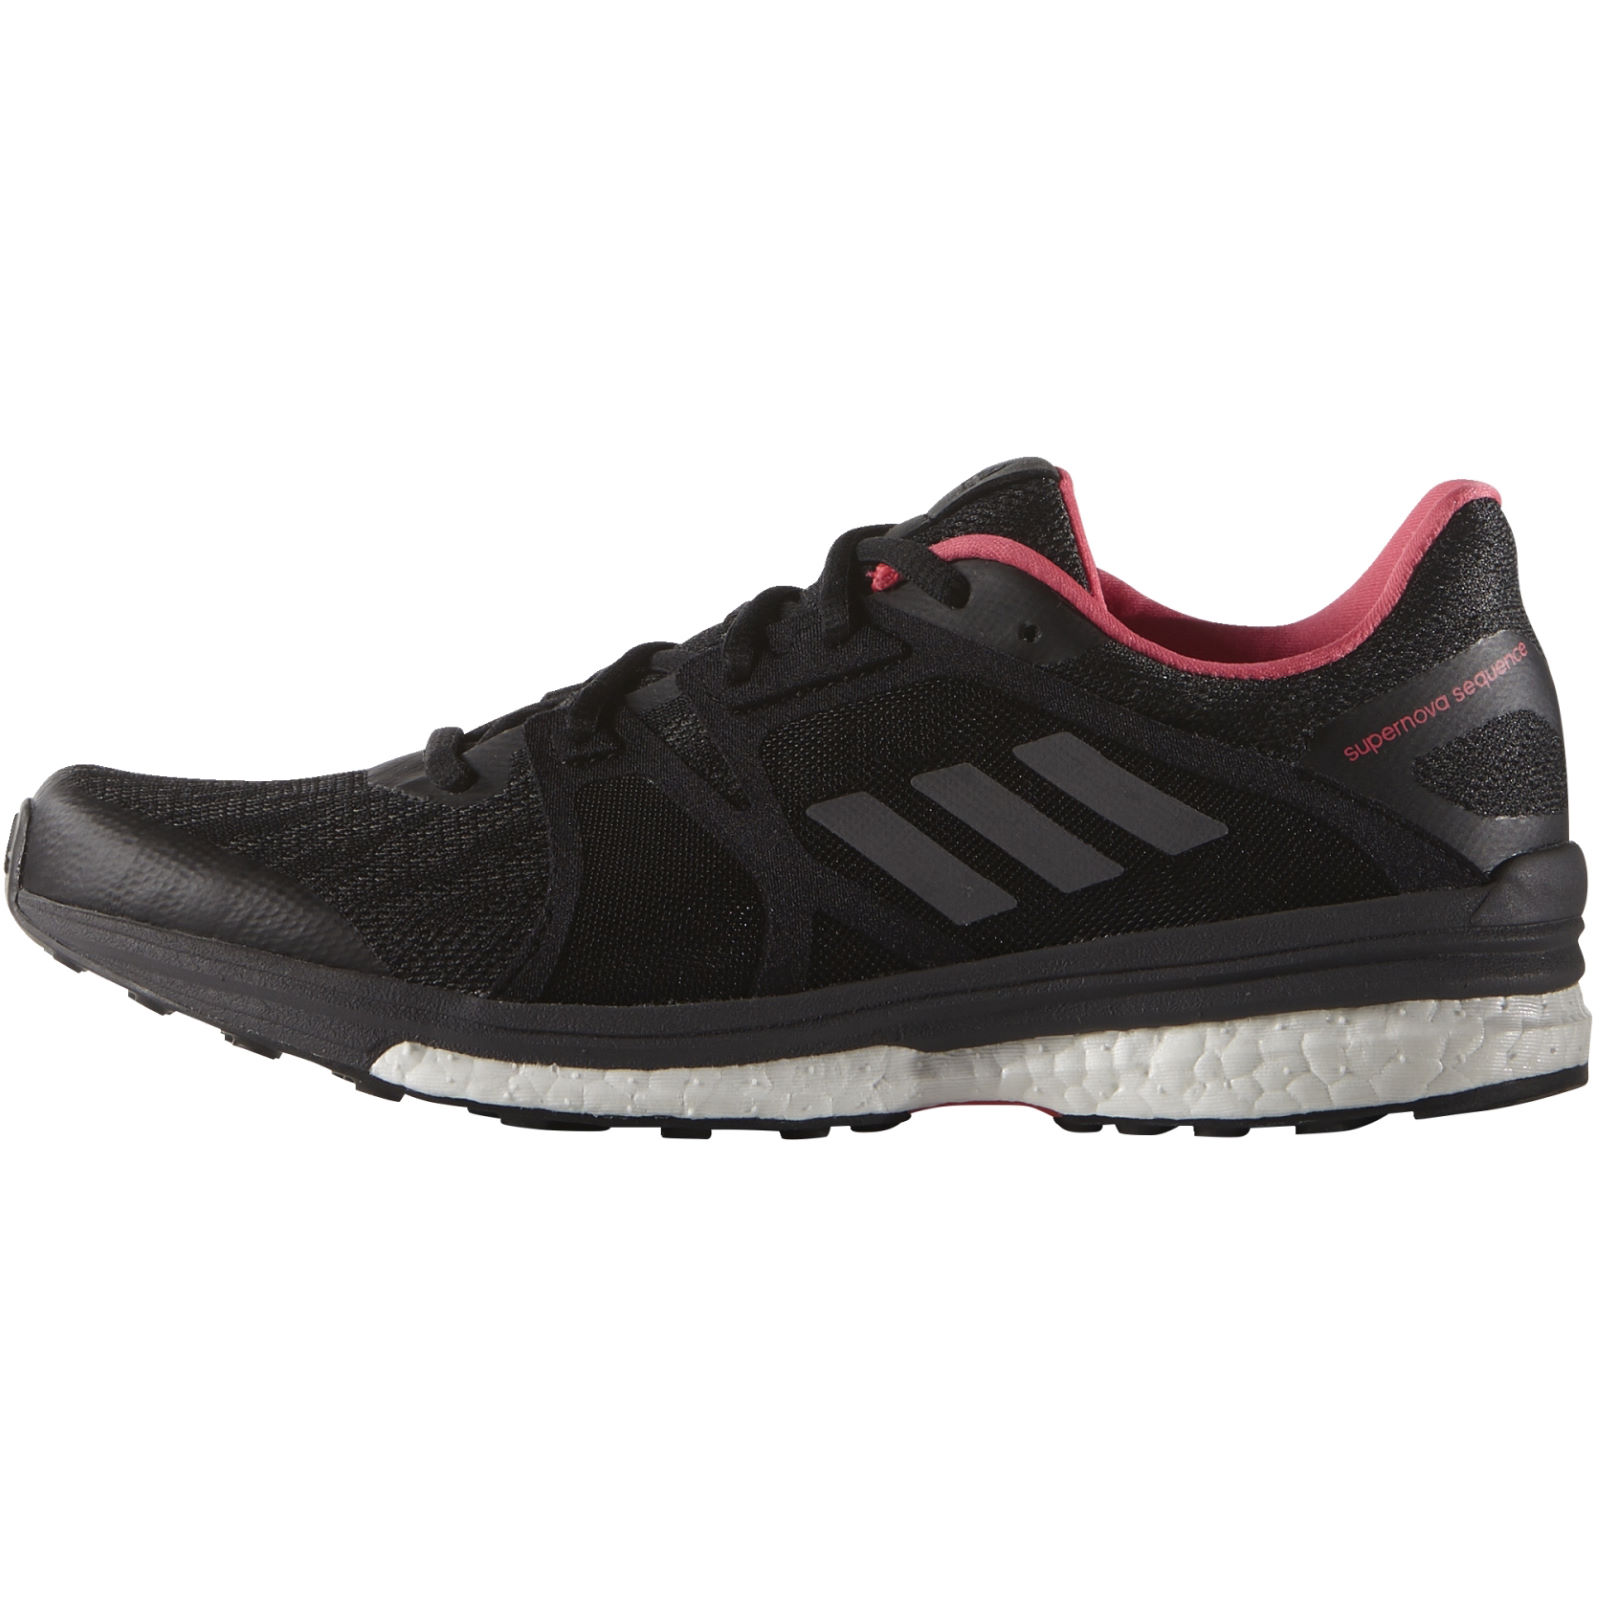 wiggle adidas women 39 s supernova sequence 9 shoes aw16. Black Bedroom Furniture Sets. Home Design Ideas